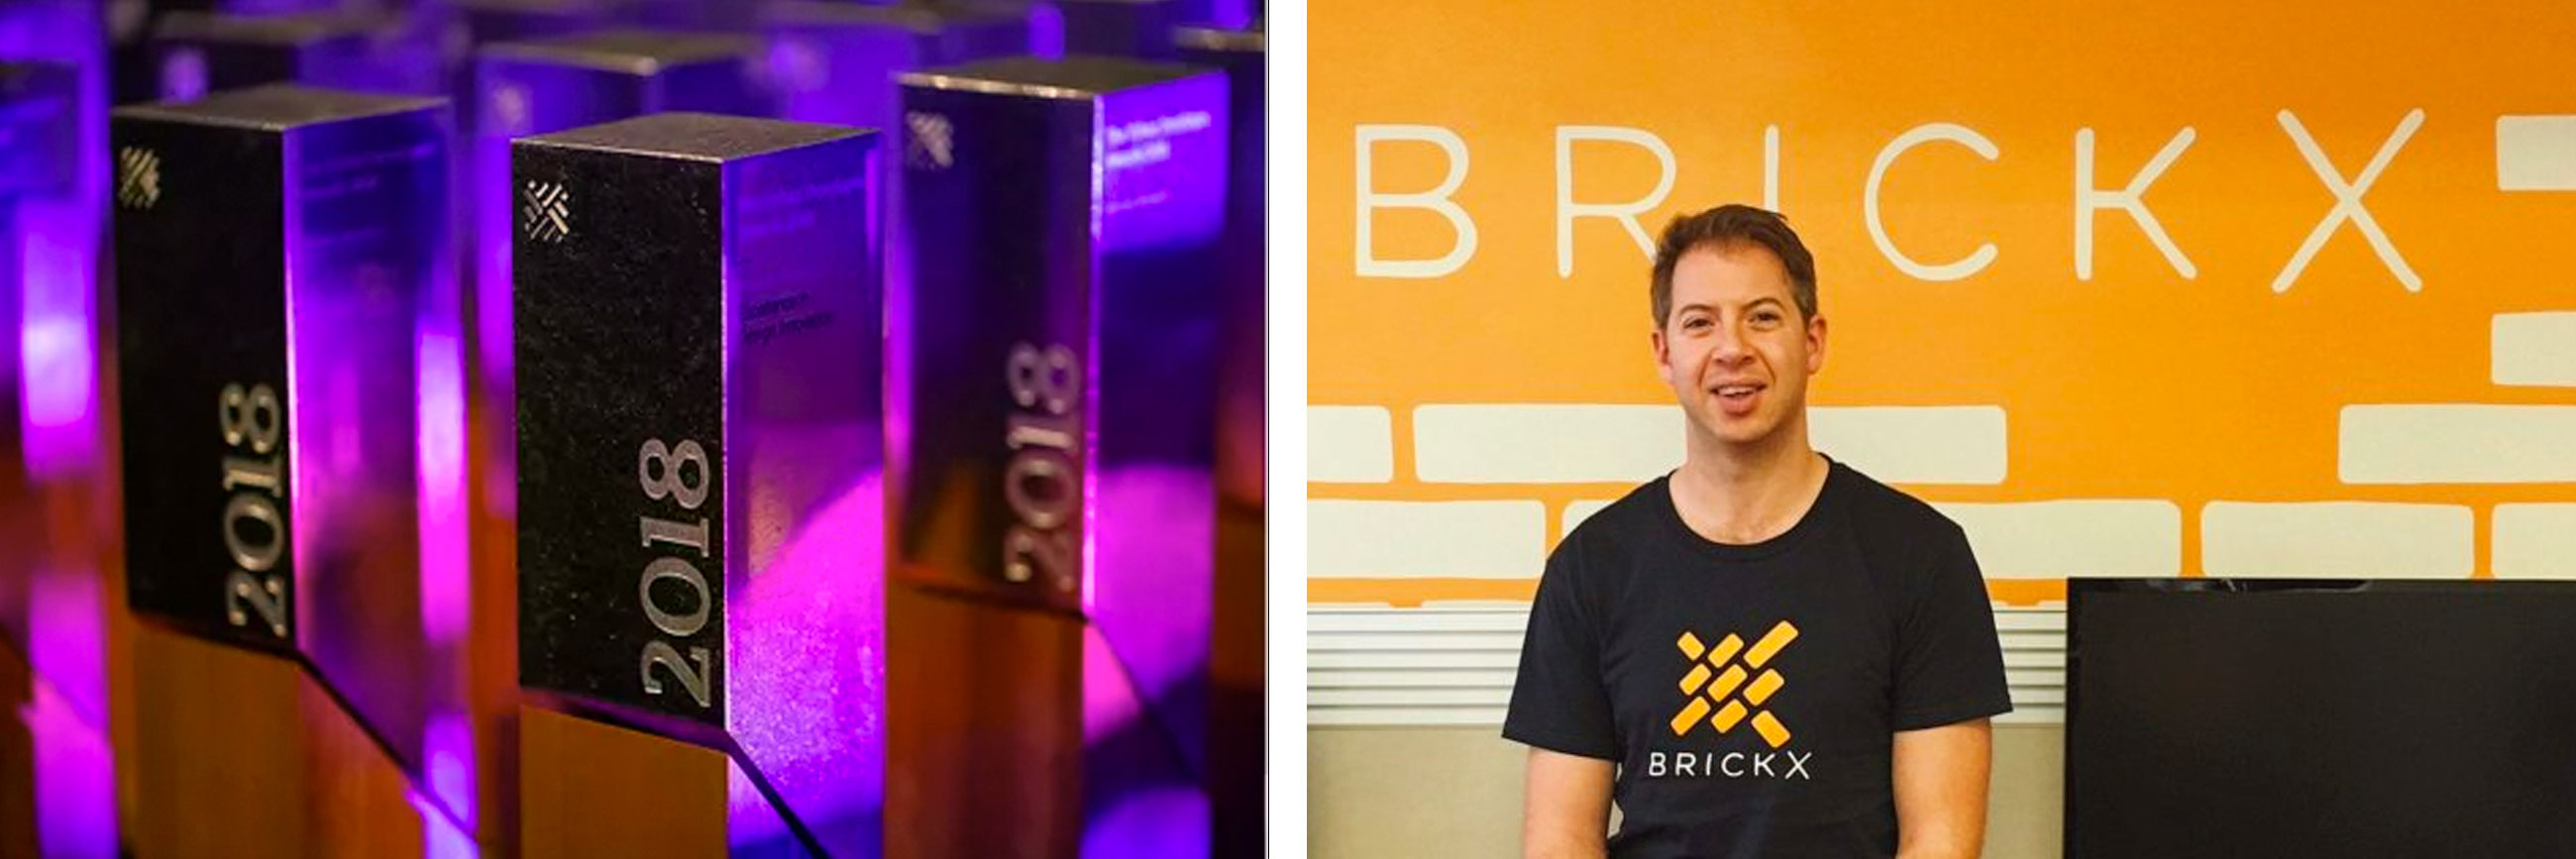 The judges recognised BRICKX for innovating beyond just technology by developing an integrated model that provides accessibility, liquidity and transparency within Australia's $7 trillion residential real estate market.